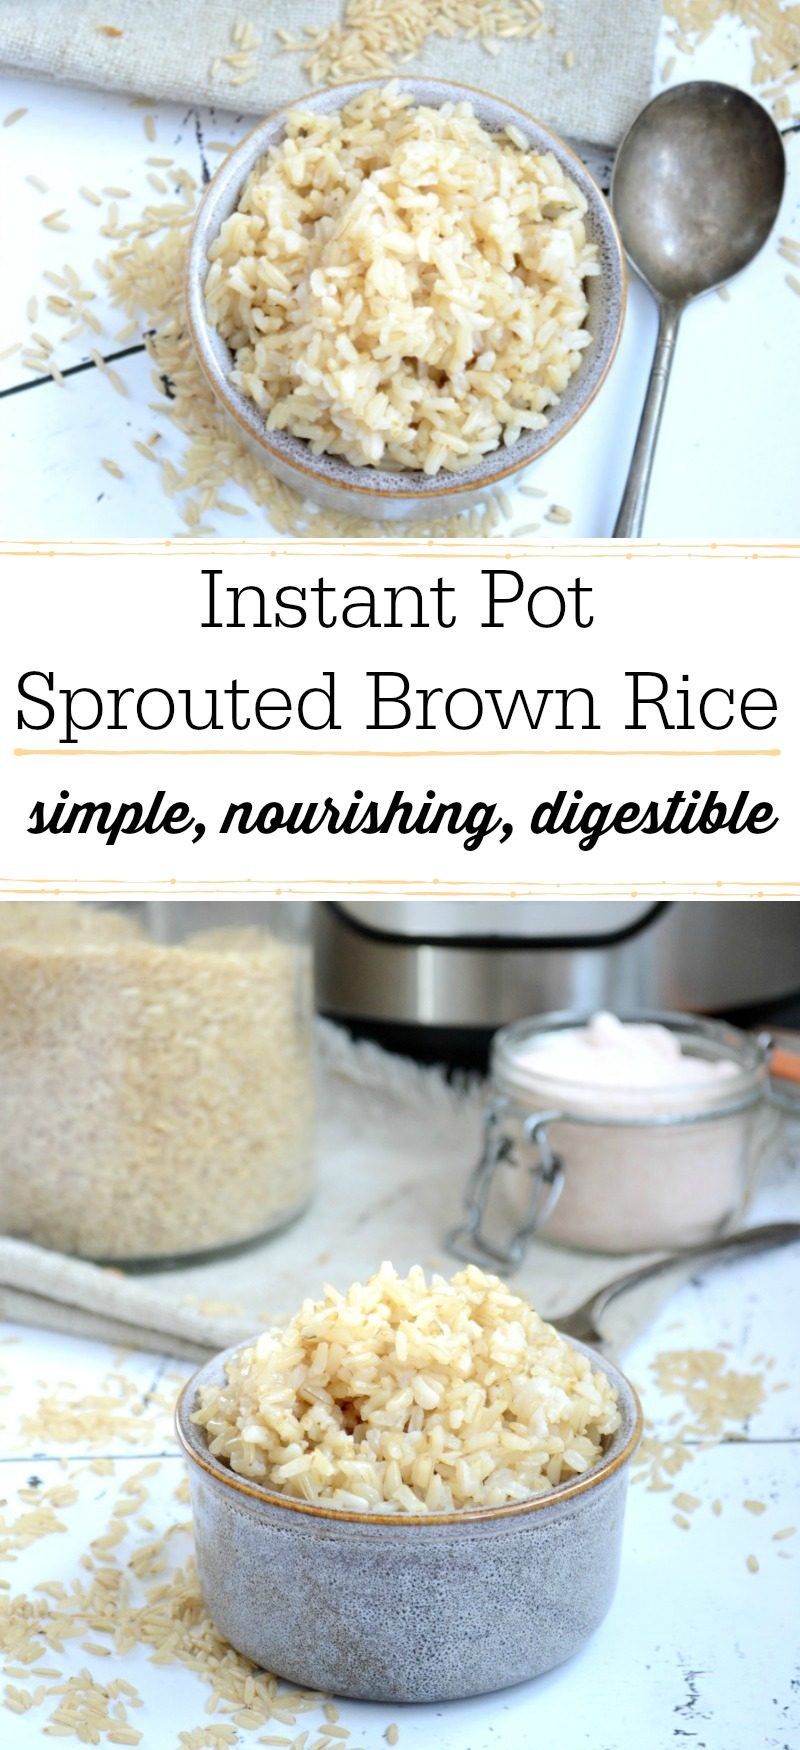 You want to prepare your grains and beans with traditional methods, like soaking and sprouting, to reduce phytic acid and make them more digestible and nourishing... But, you can't figure out how to cook your prepared grains in your pressure cooker. The user manual doesn't tell you that! Here's how to cook basic Instant Pot Sprouted Brown Rice that's simple and nourishing!